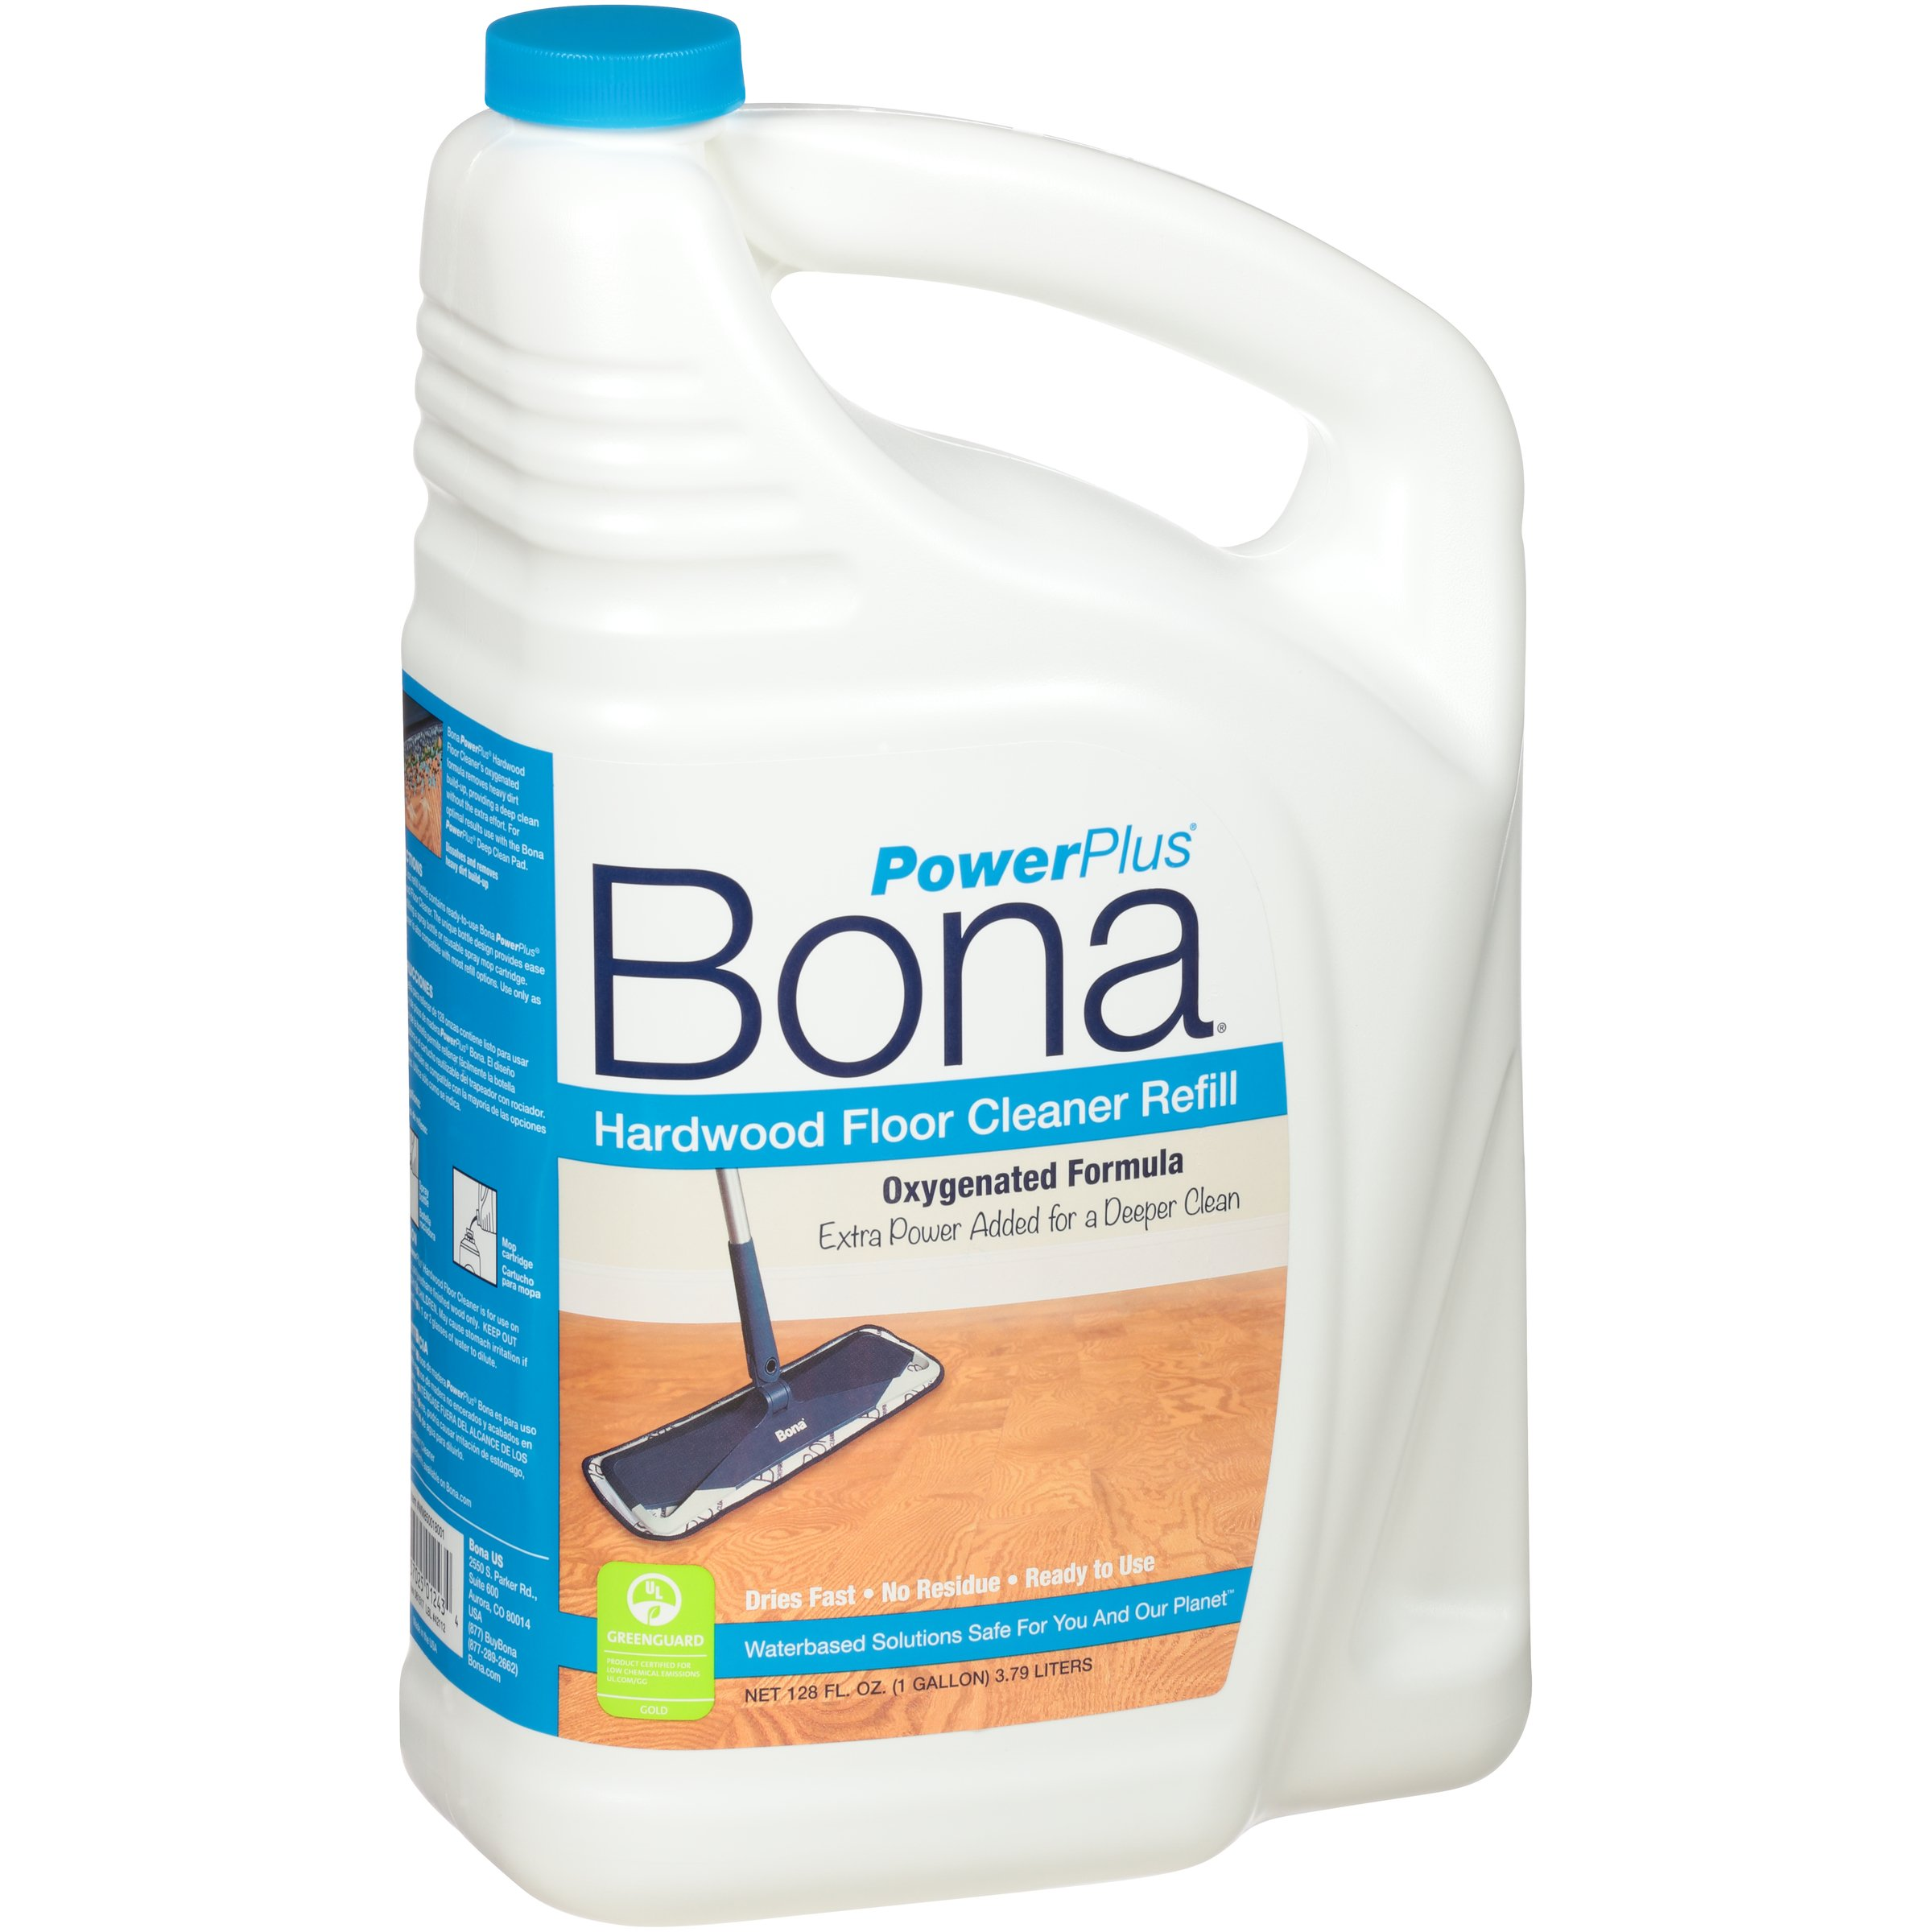 Bona WM850018001 Hardwood PowerPlus Deep Cleaner Refill 128oz